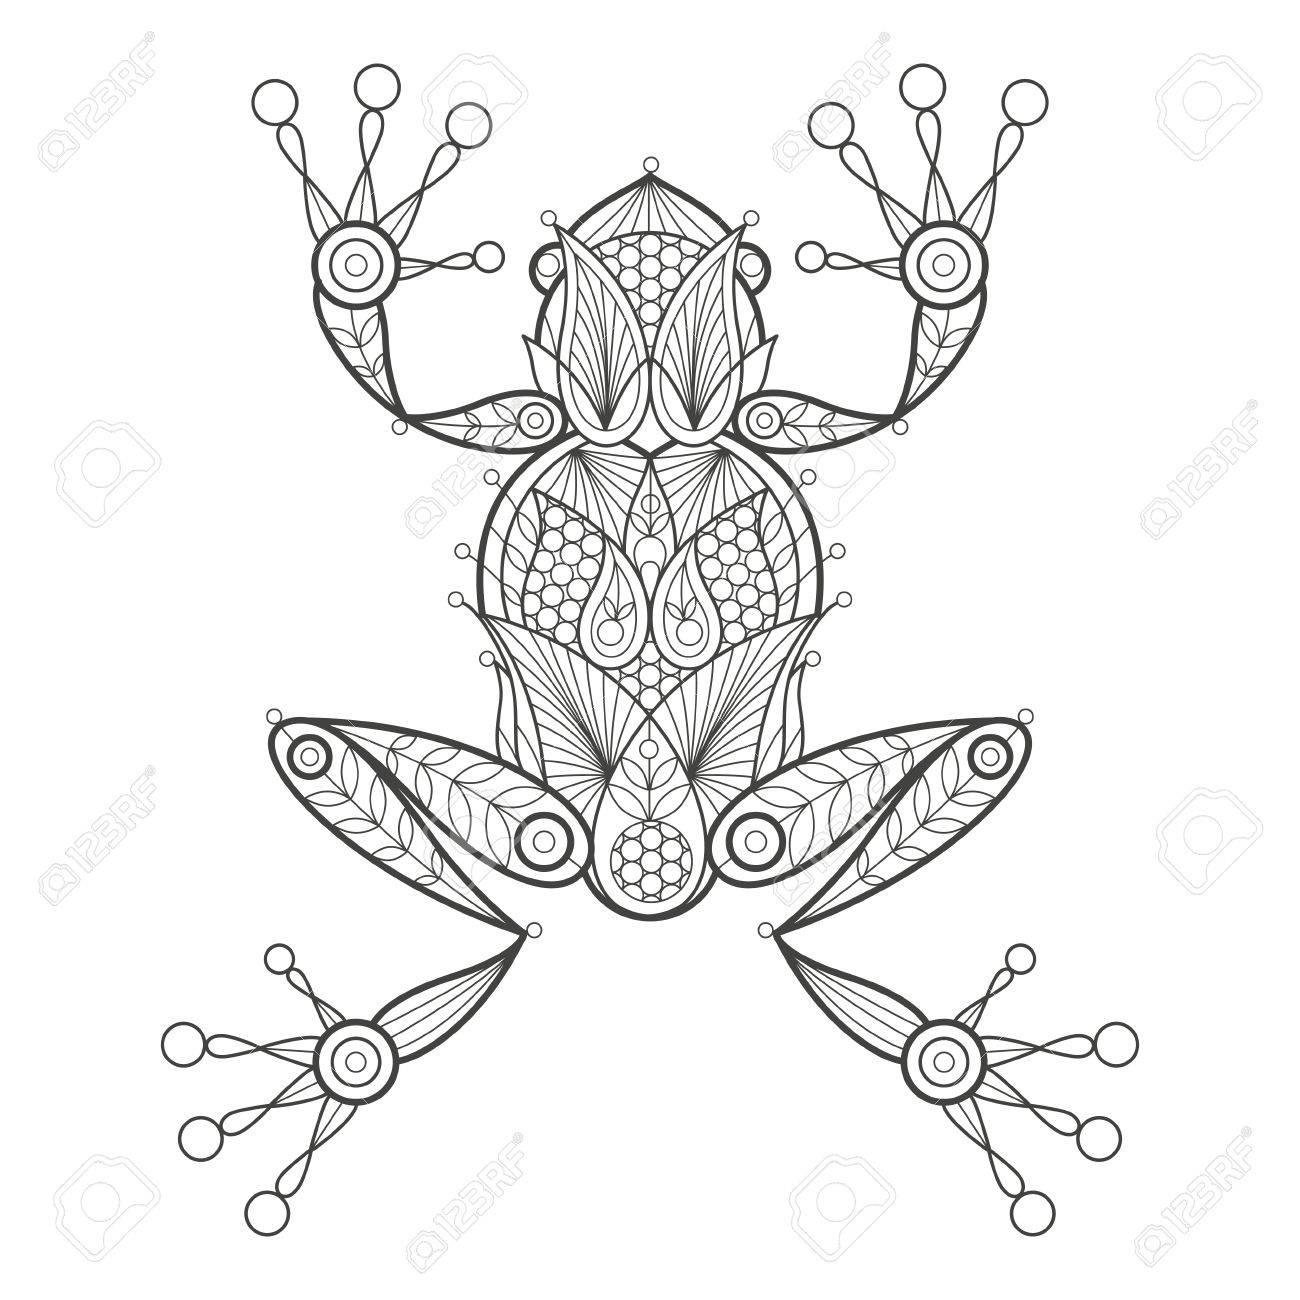 Vector illustration decorative frog on white background. Fashion trend of adult coloration. Amphibian frog vector with elements oriental motif Turkish cucumber. Black and white. Modern vector design. - 55005983